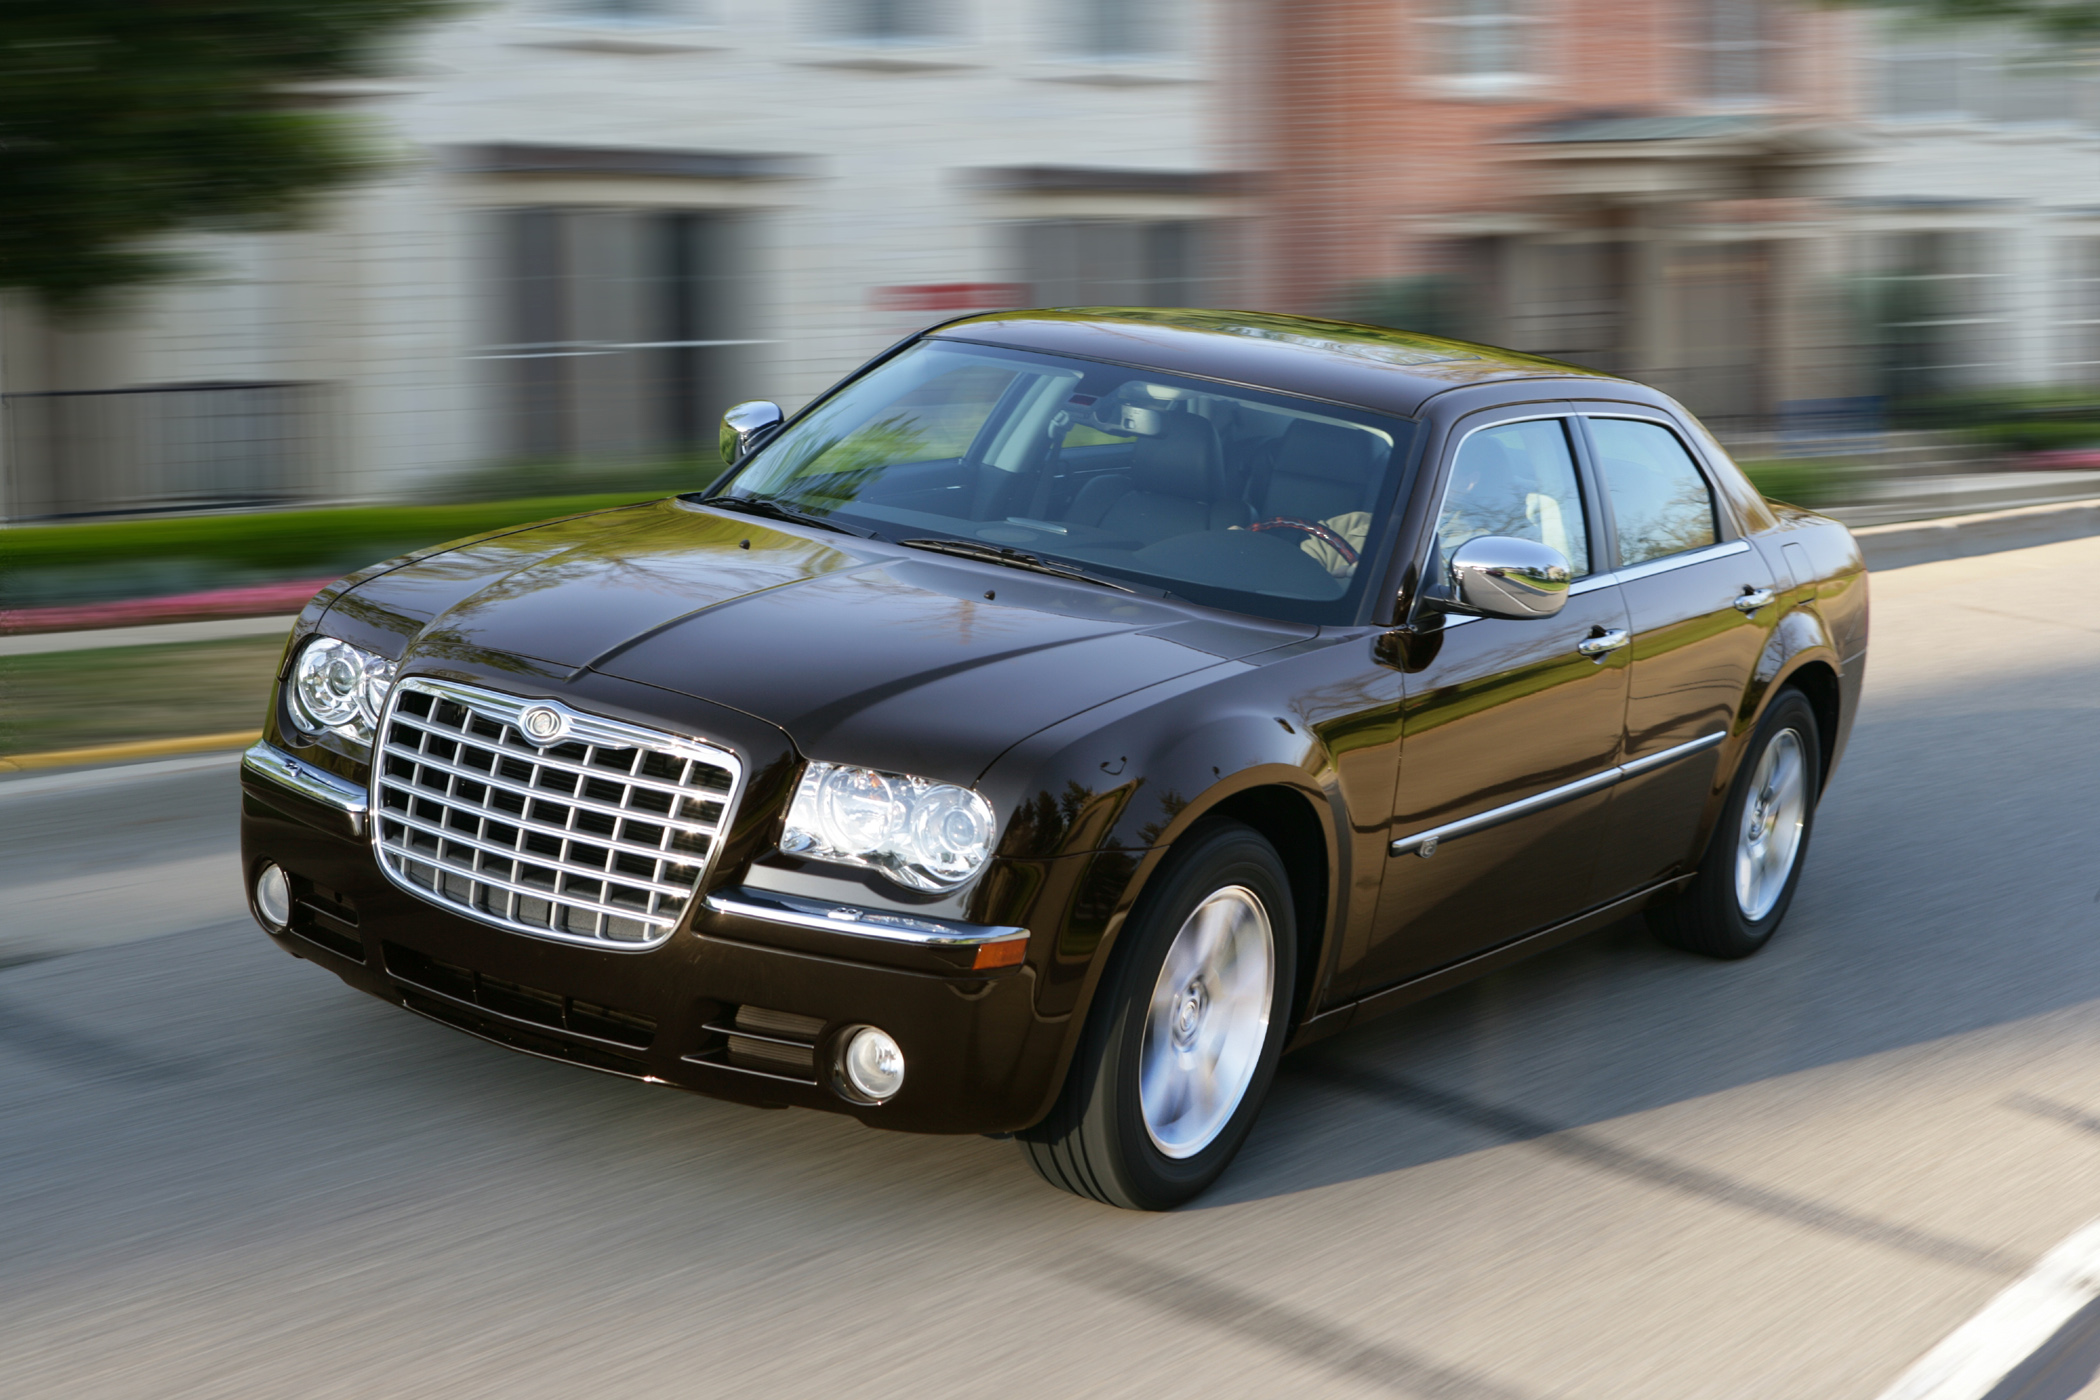 2010 chrysler 300c is large car with big style new on wheels groovecar. Black Bedroom Furniture Sets. Home Design Ideas